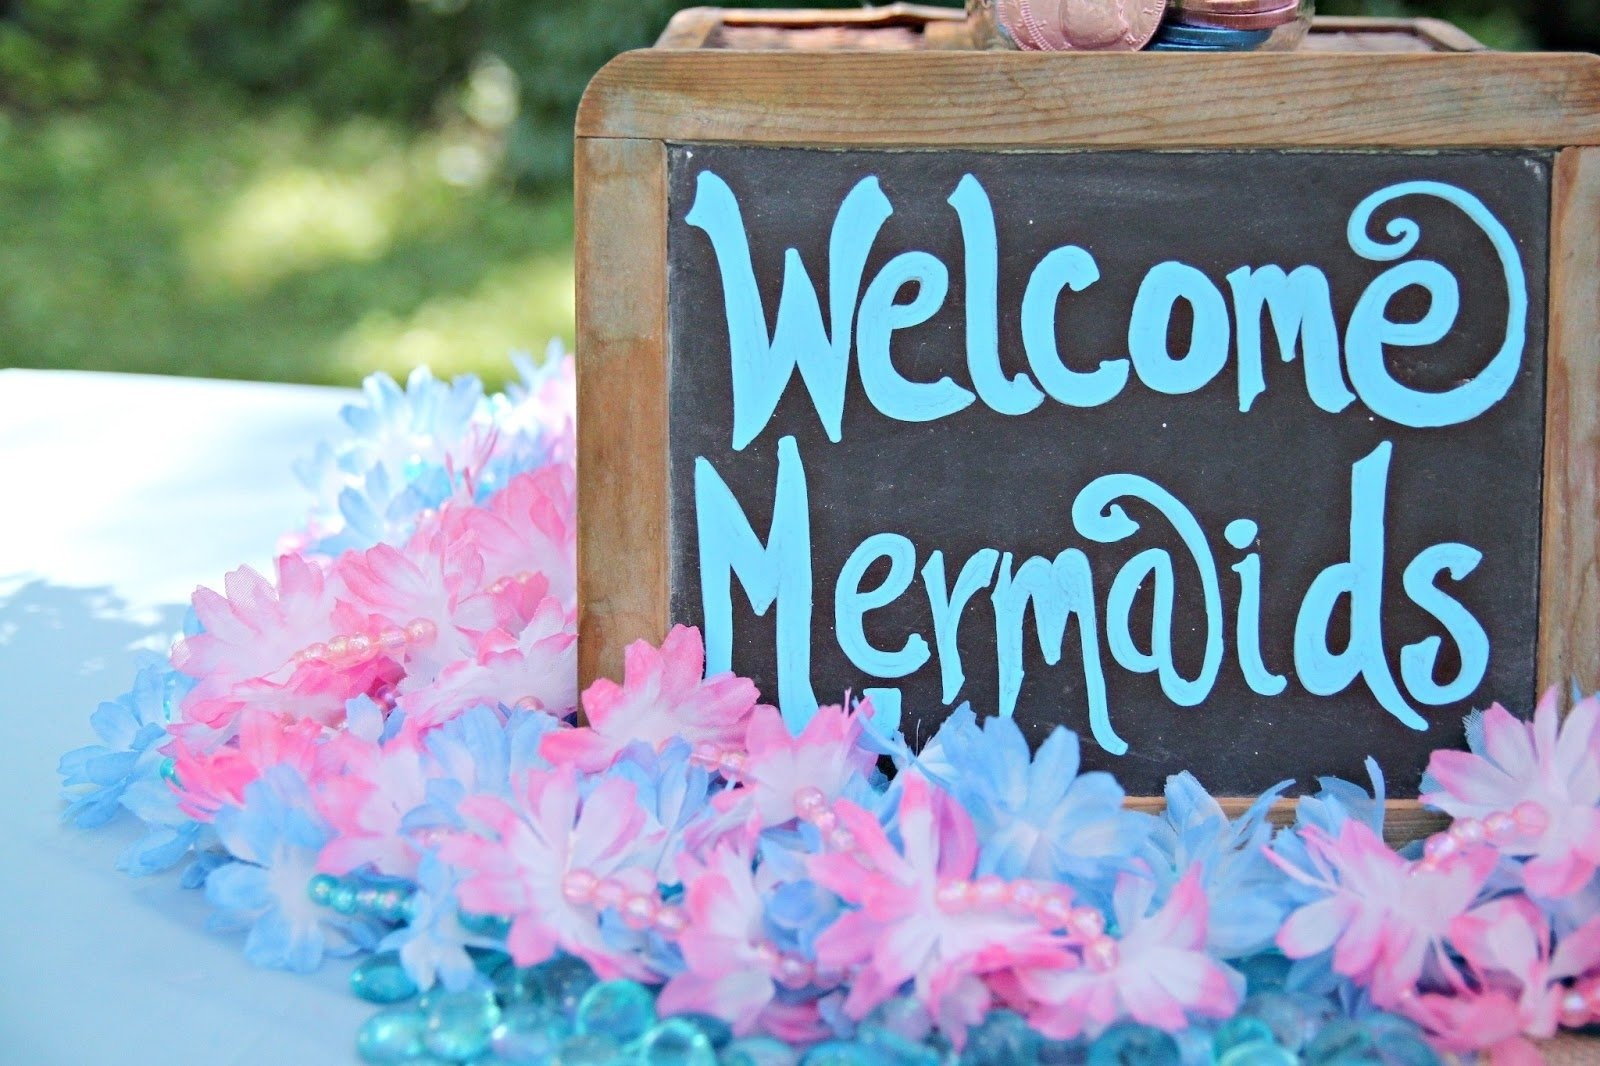 10 Great The Little Mermaid Birthday Party Ideas 14 awesome little mermaid birthday party ideas birthday inspire 2021